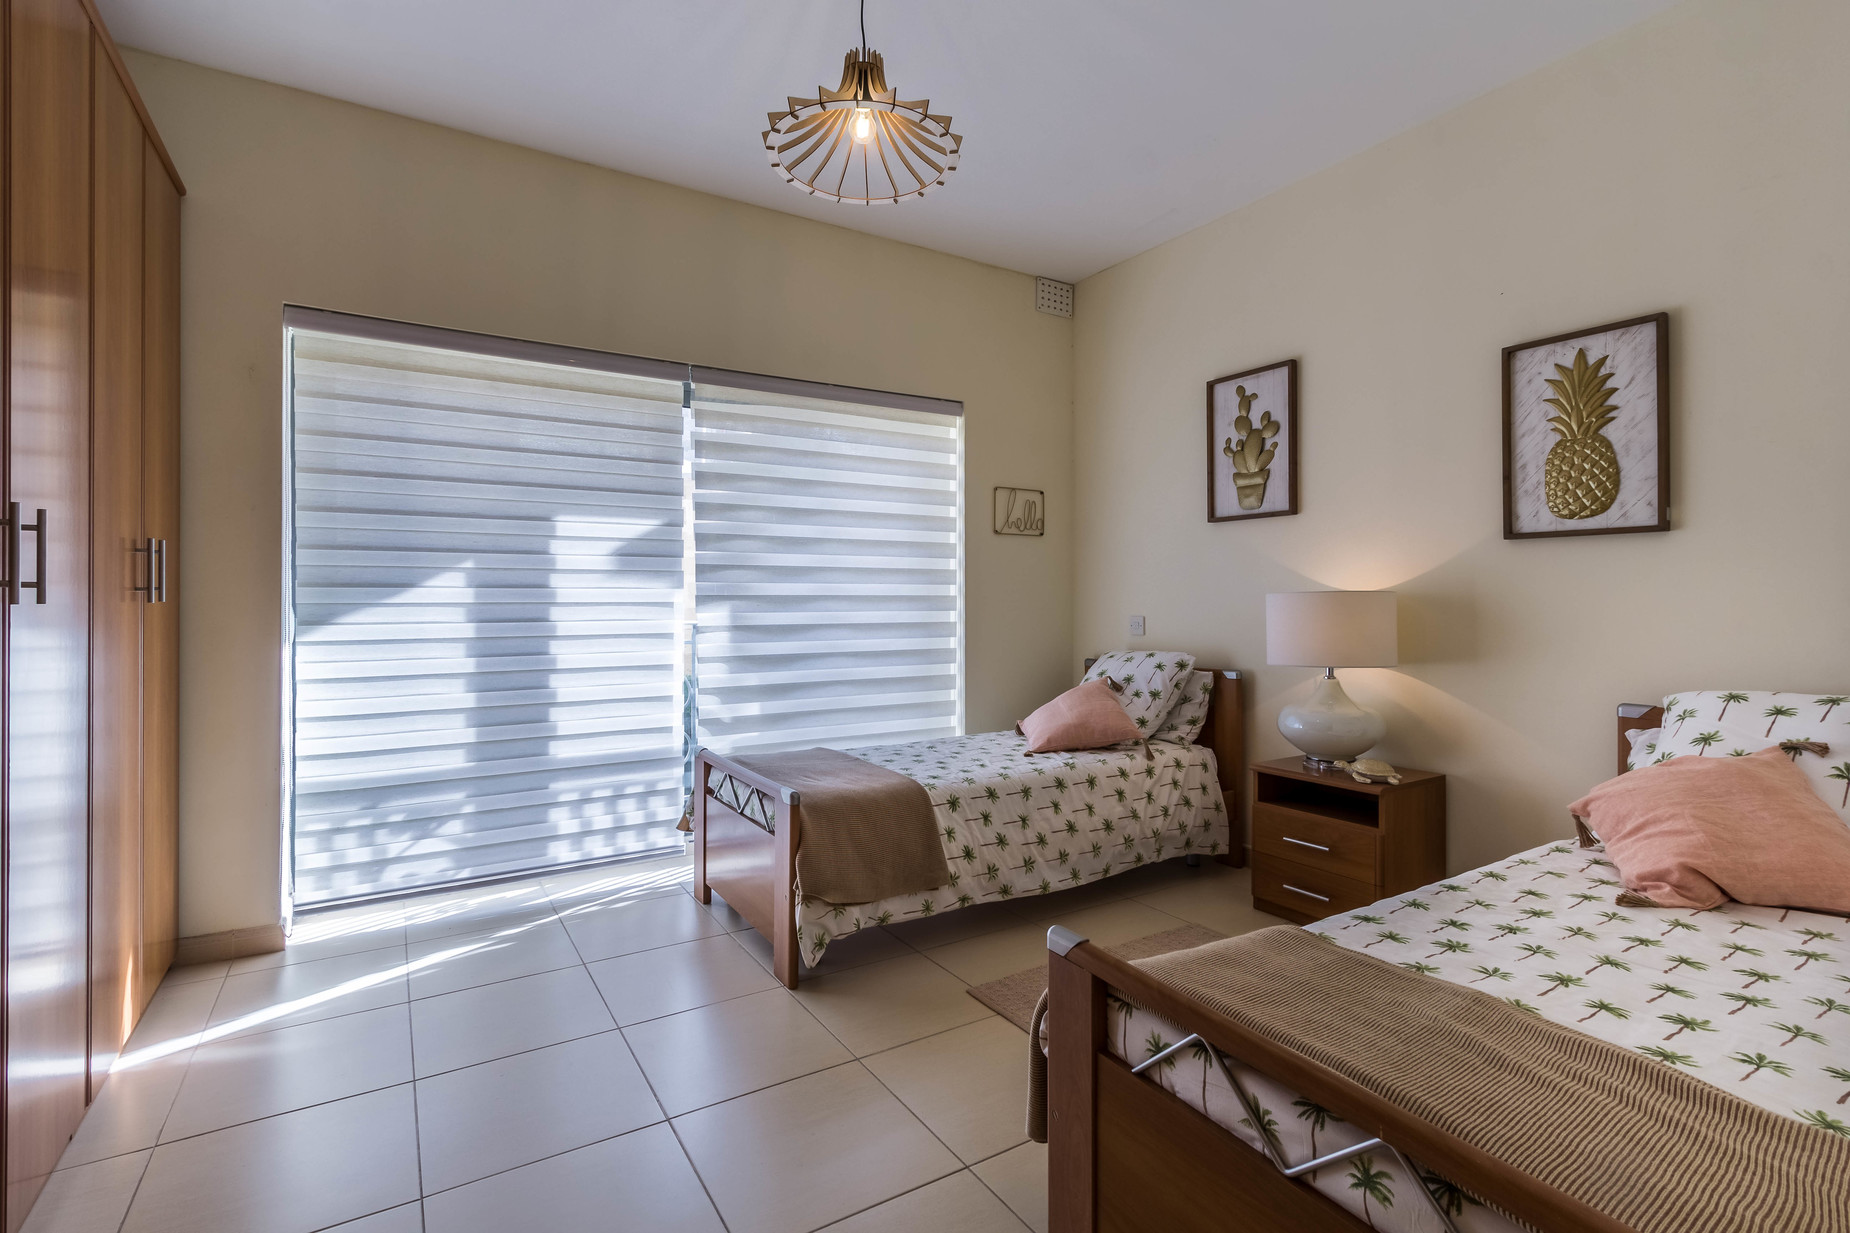 3 bed Apartment For Sale in Mellieha, Mellieha - thumb 15